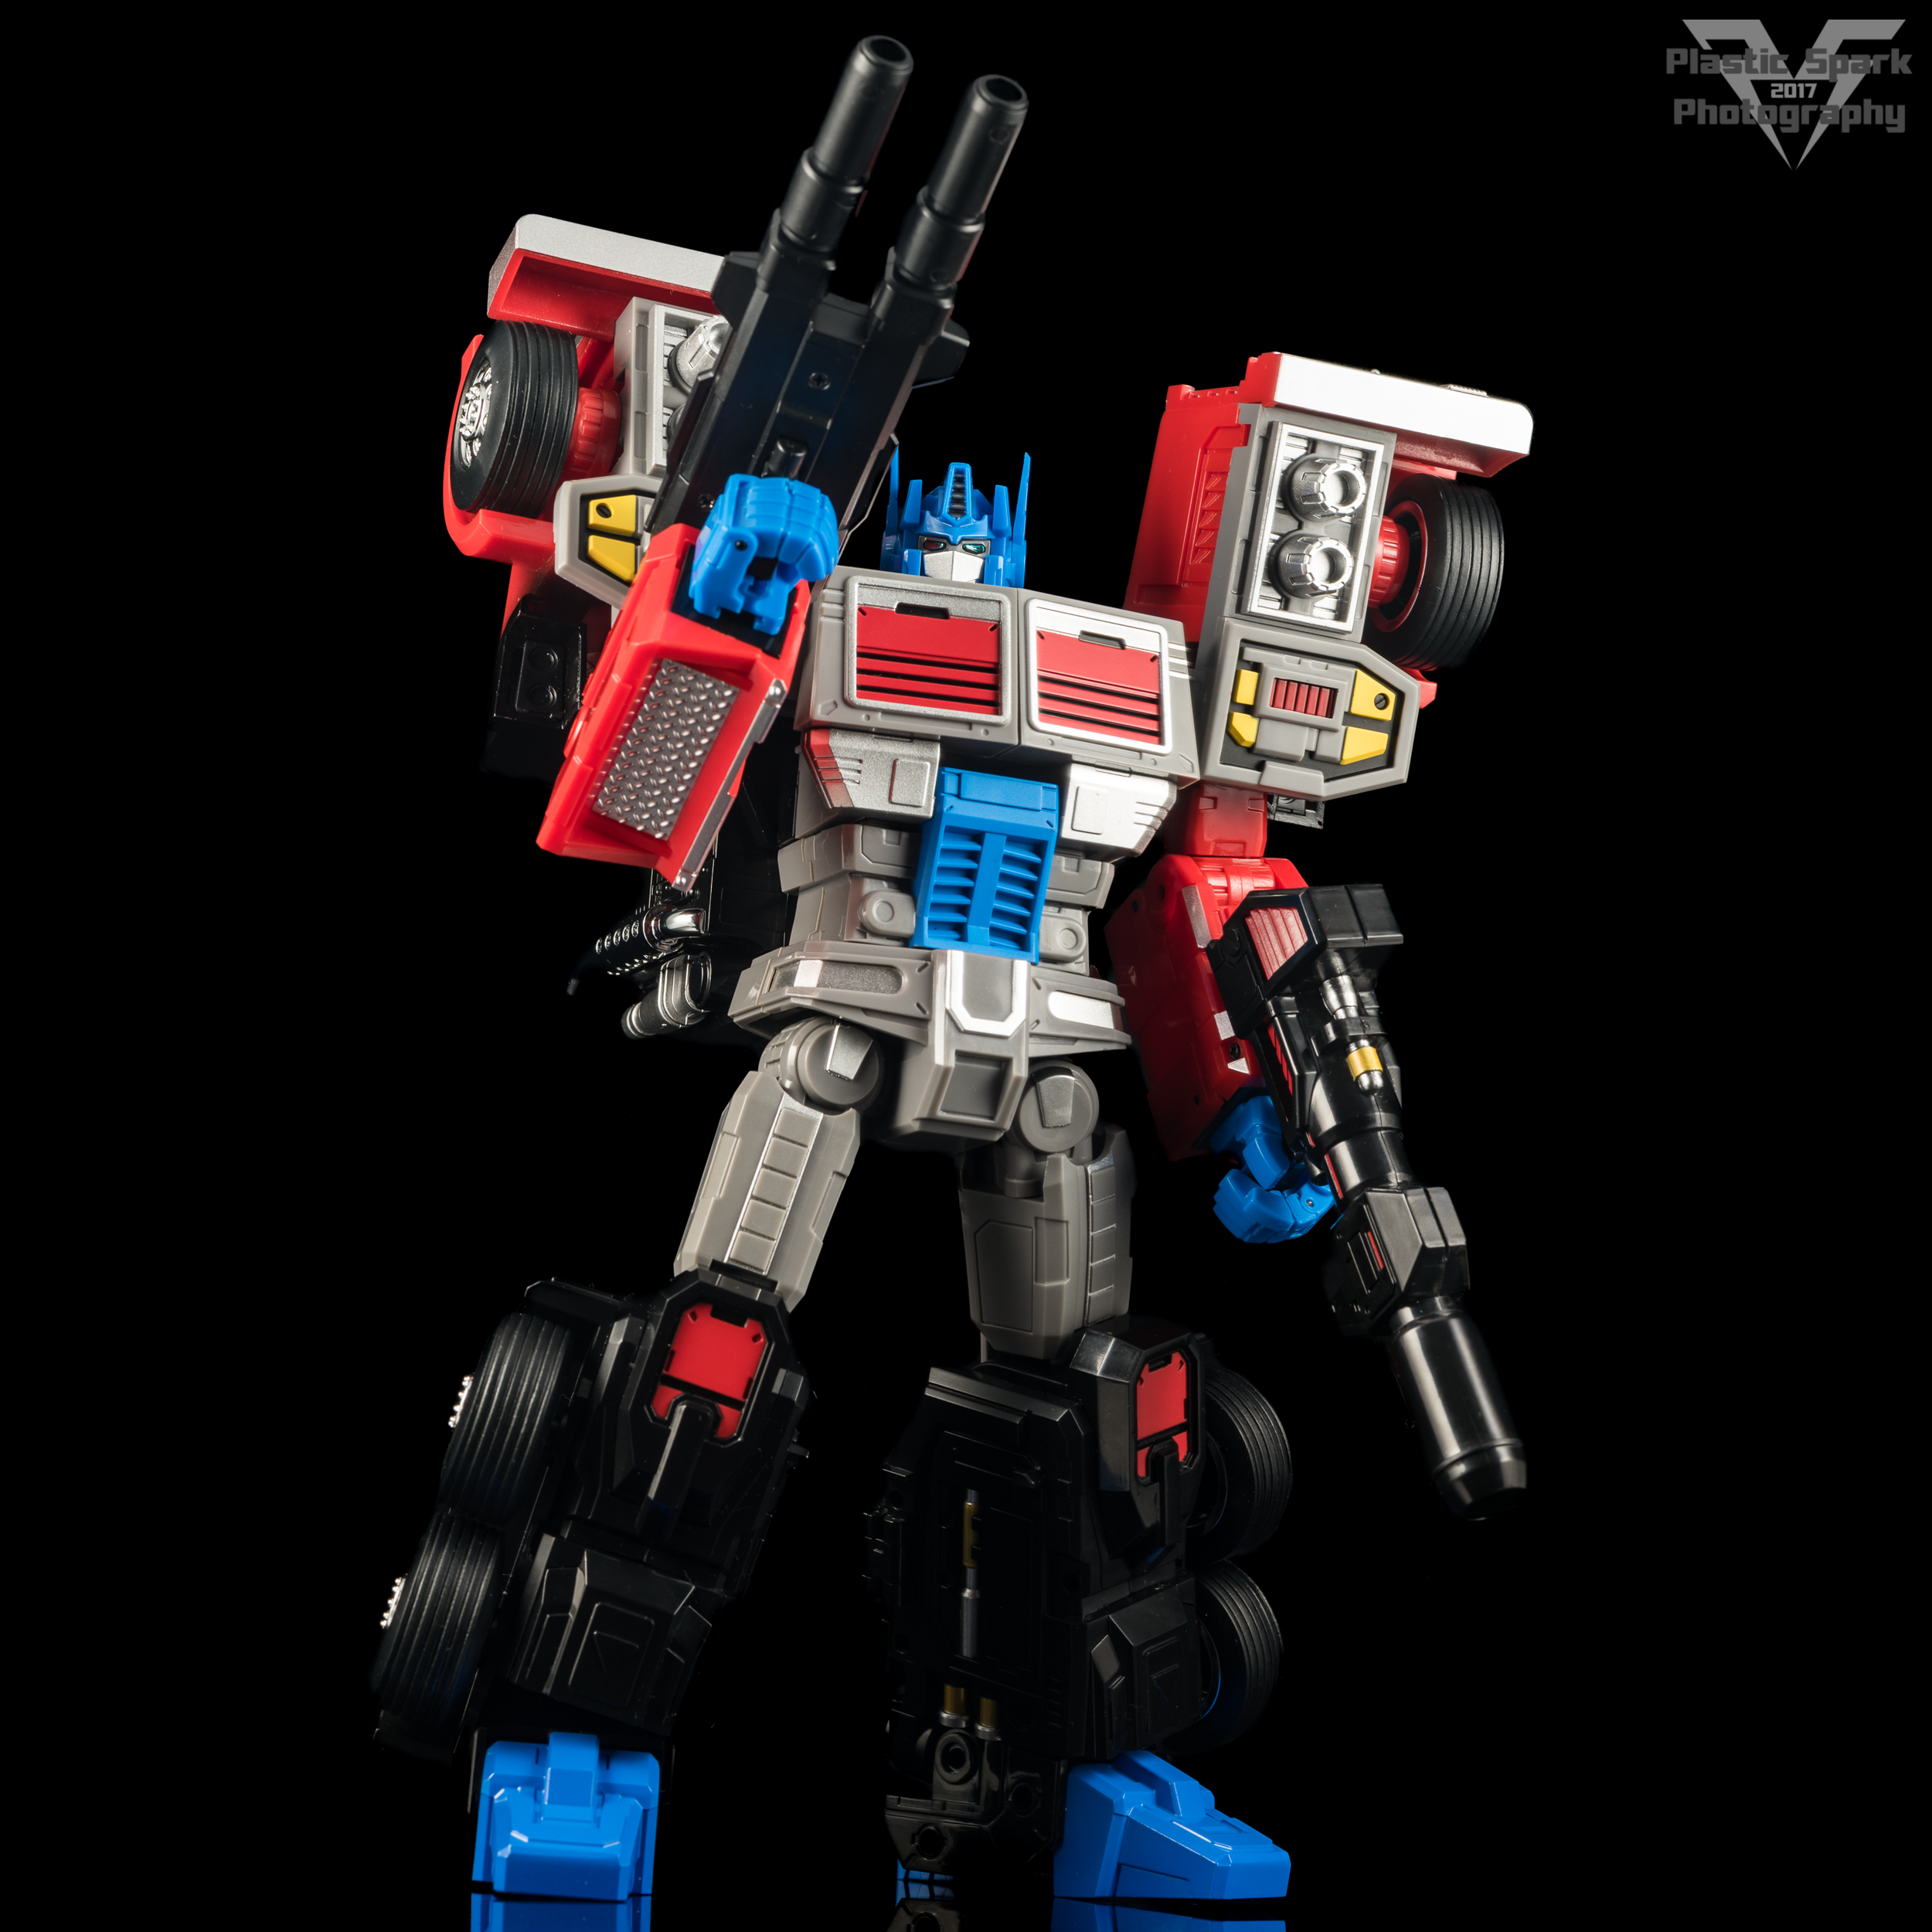 Fans-Hobby-MB-04-Gunfighter-II-(46-of-61).png